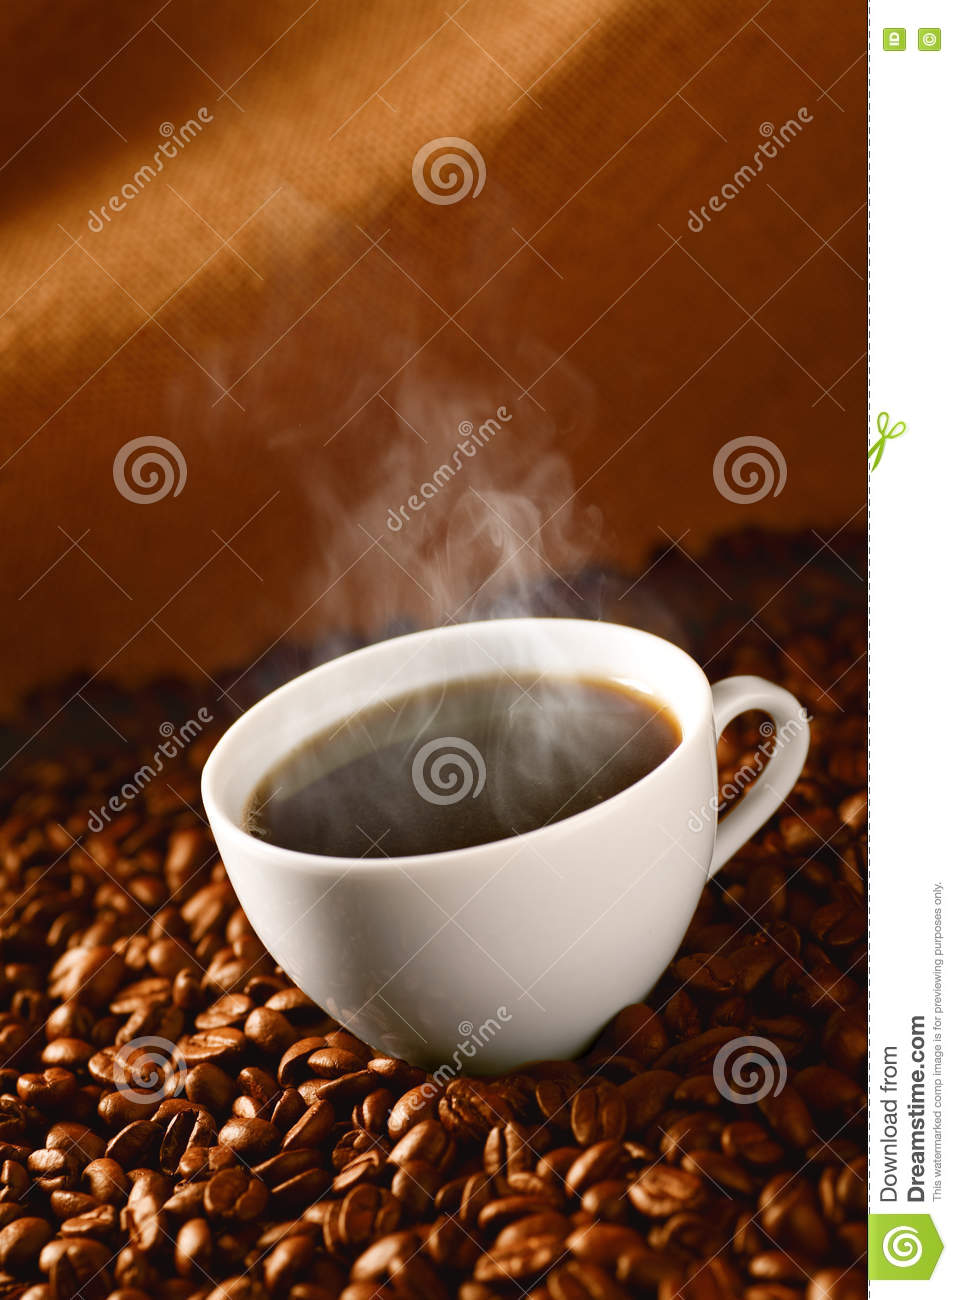 Coffee on coffee-beans 3